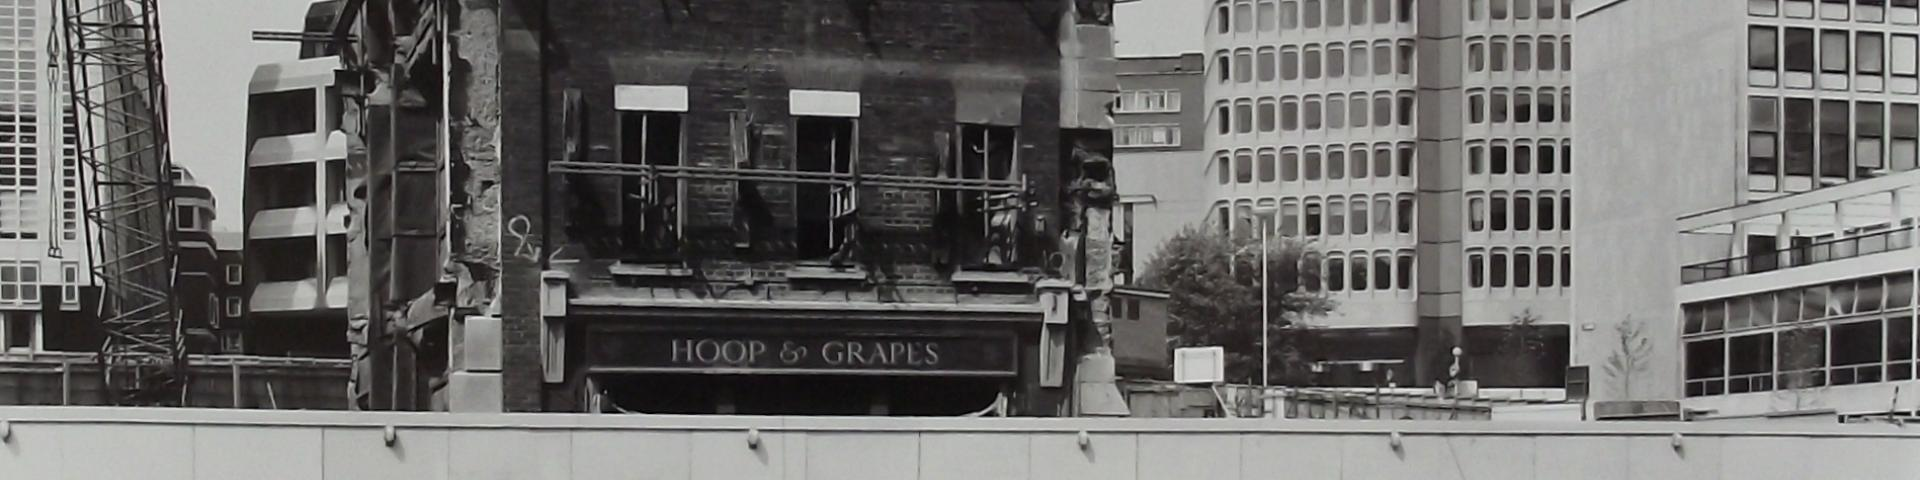 Hoop & Grapes, Farringdon. Archive Image